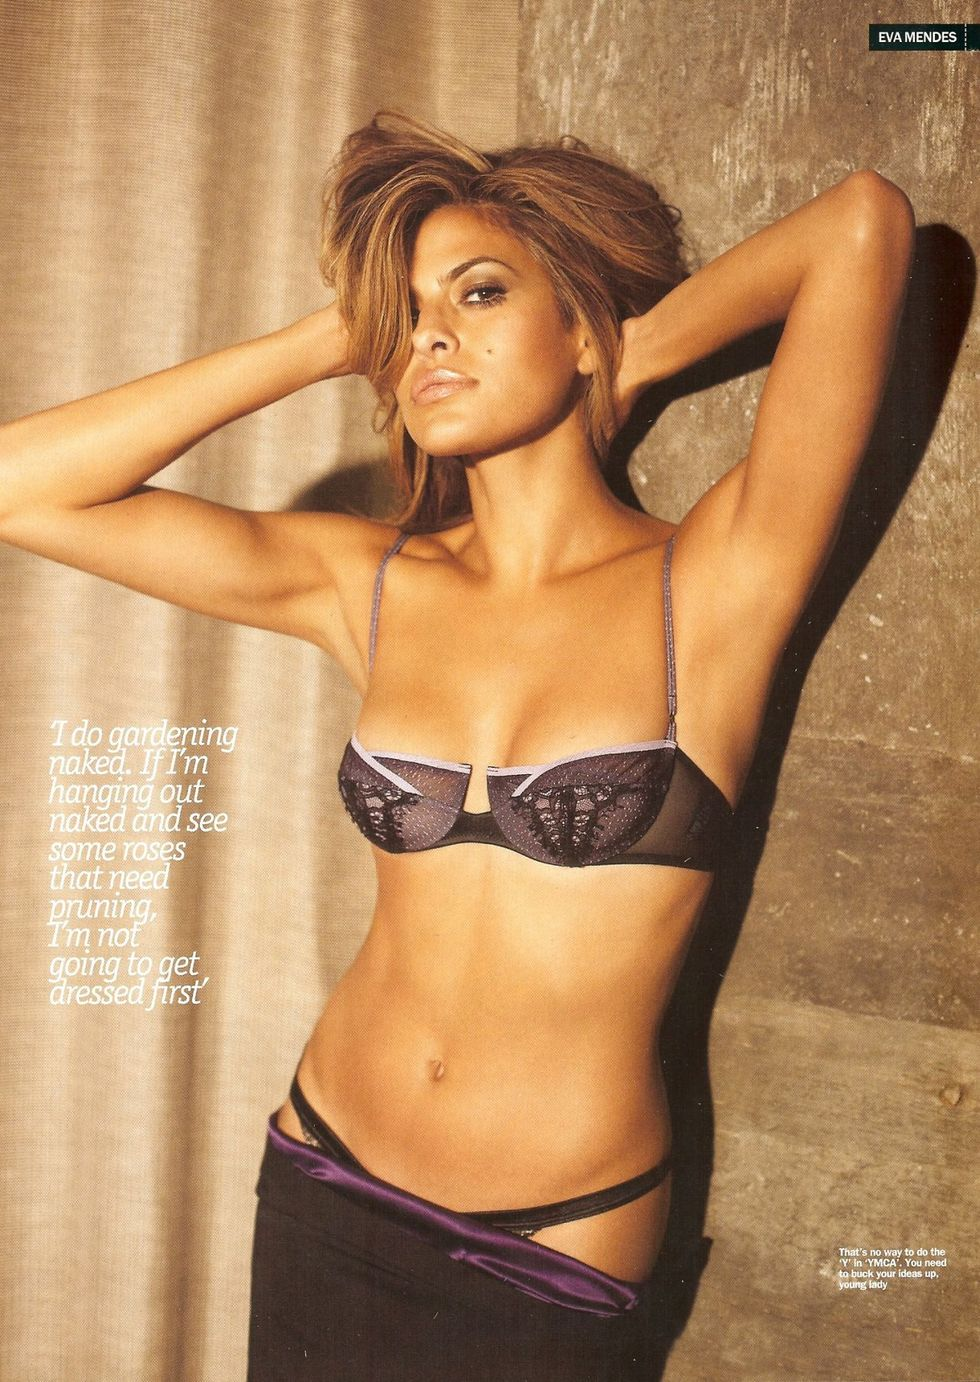 eva-mendes-maxim-magazine-uk-march-2008-01